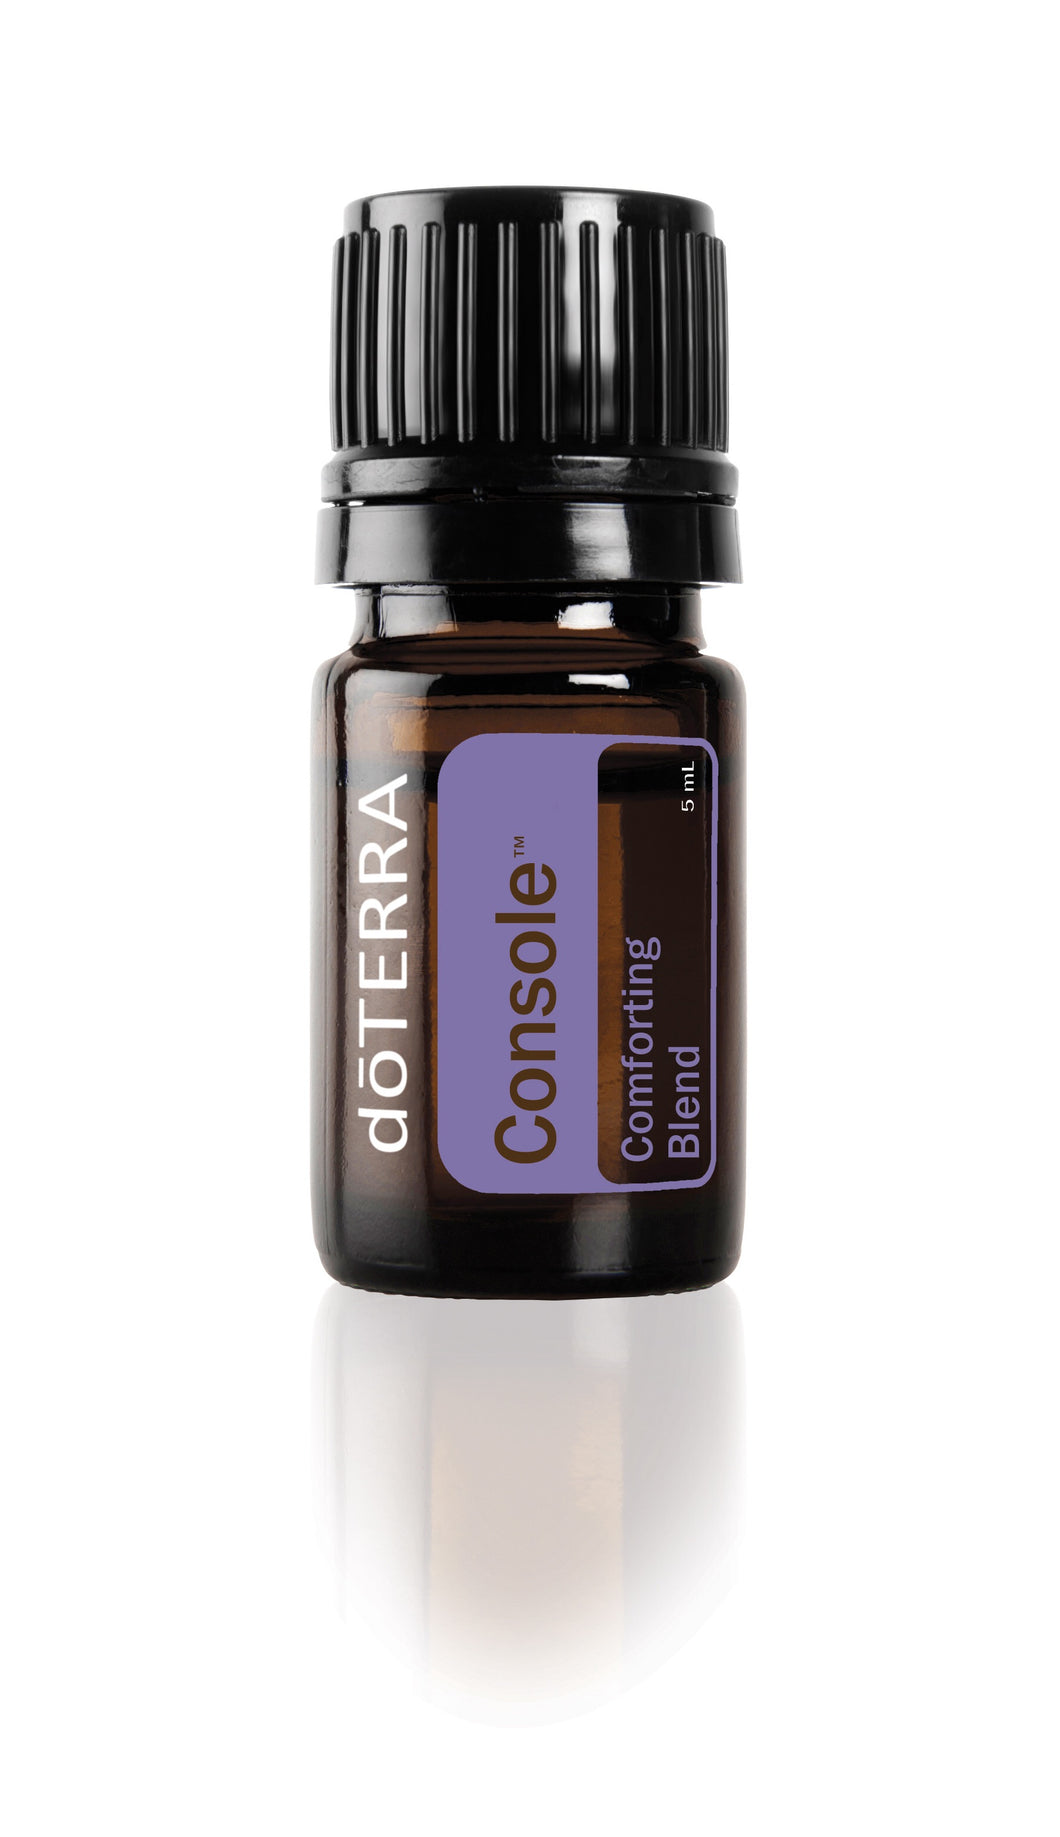 Console. Comforting Blend